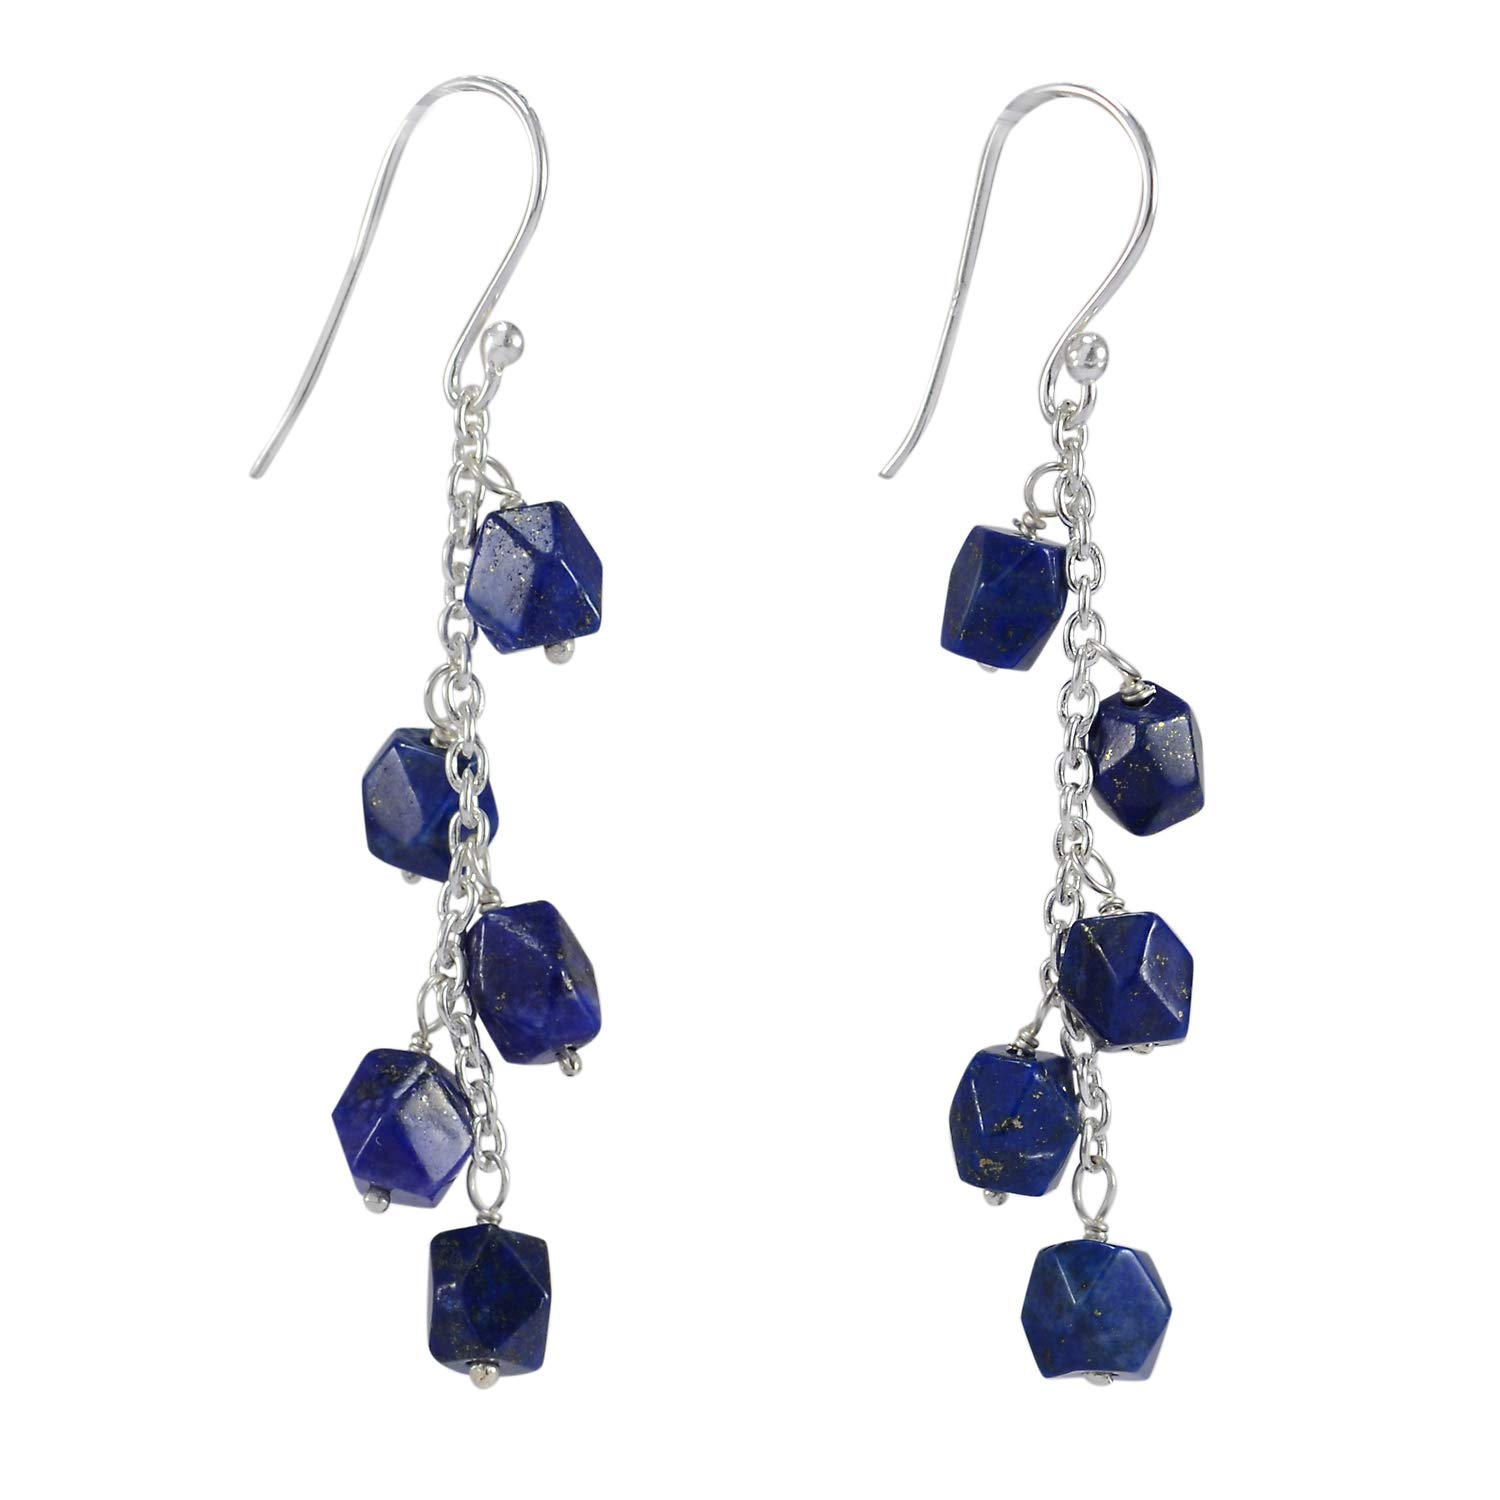 Faceted Cut Rolo Chain Dangle Earring Jaipur Rajasthan India Handmade Jewelry Manufacturer Square Lapis Lazuli 925 Sterling Silver